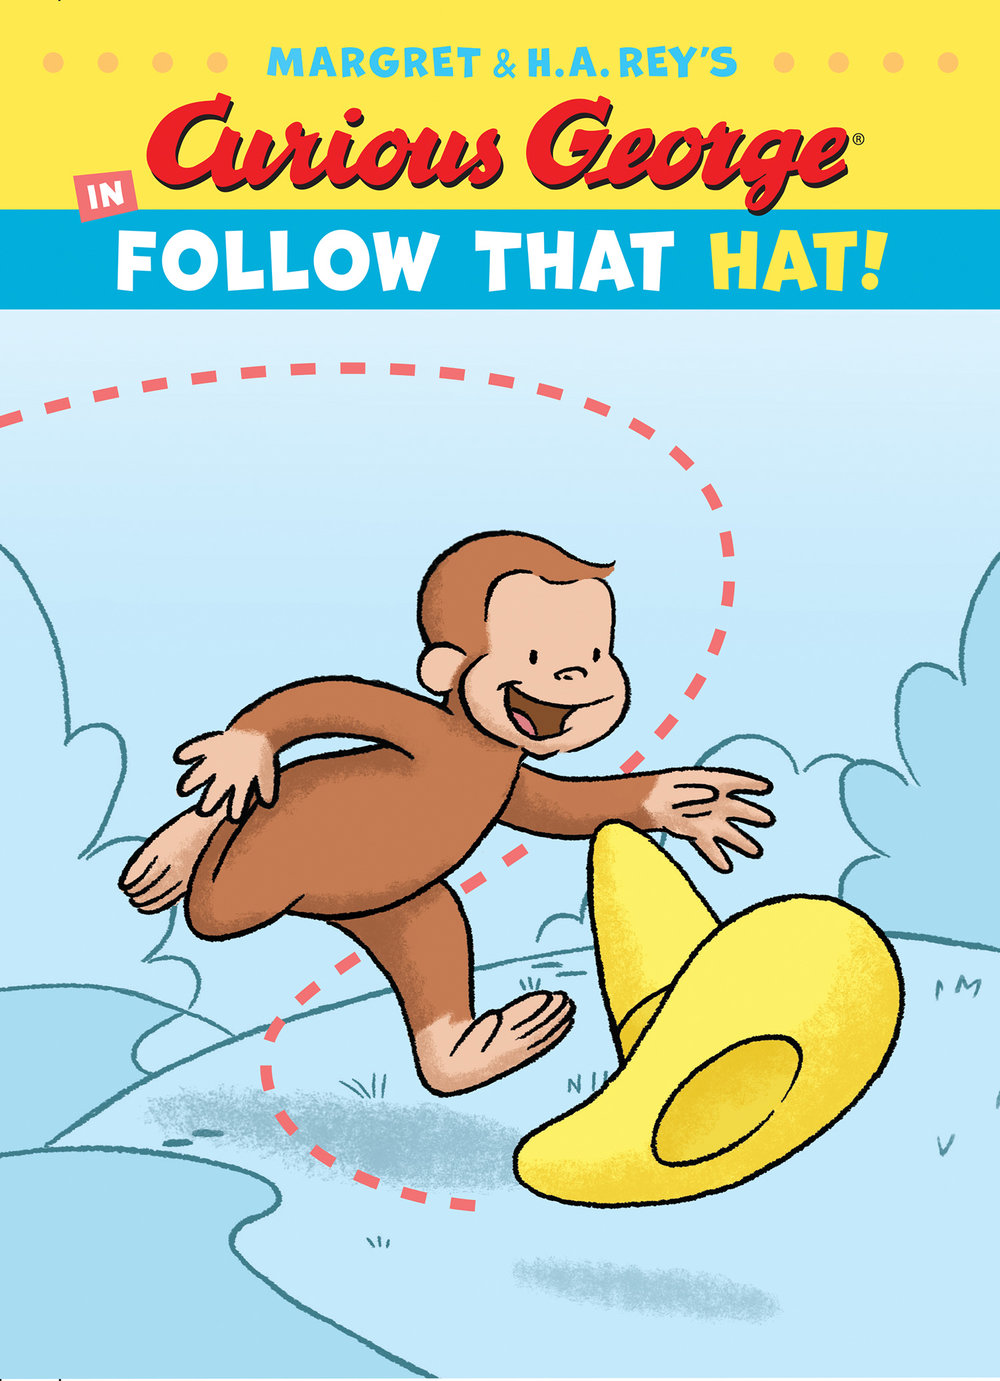 Curious-George-in-Follow-That-Hat!_Rey_9781328737182_hres.jpg